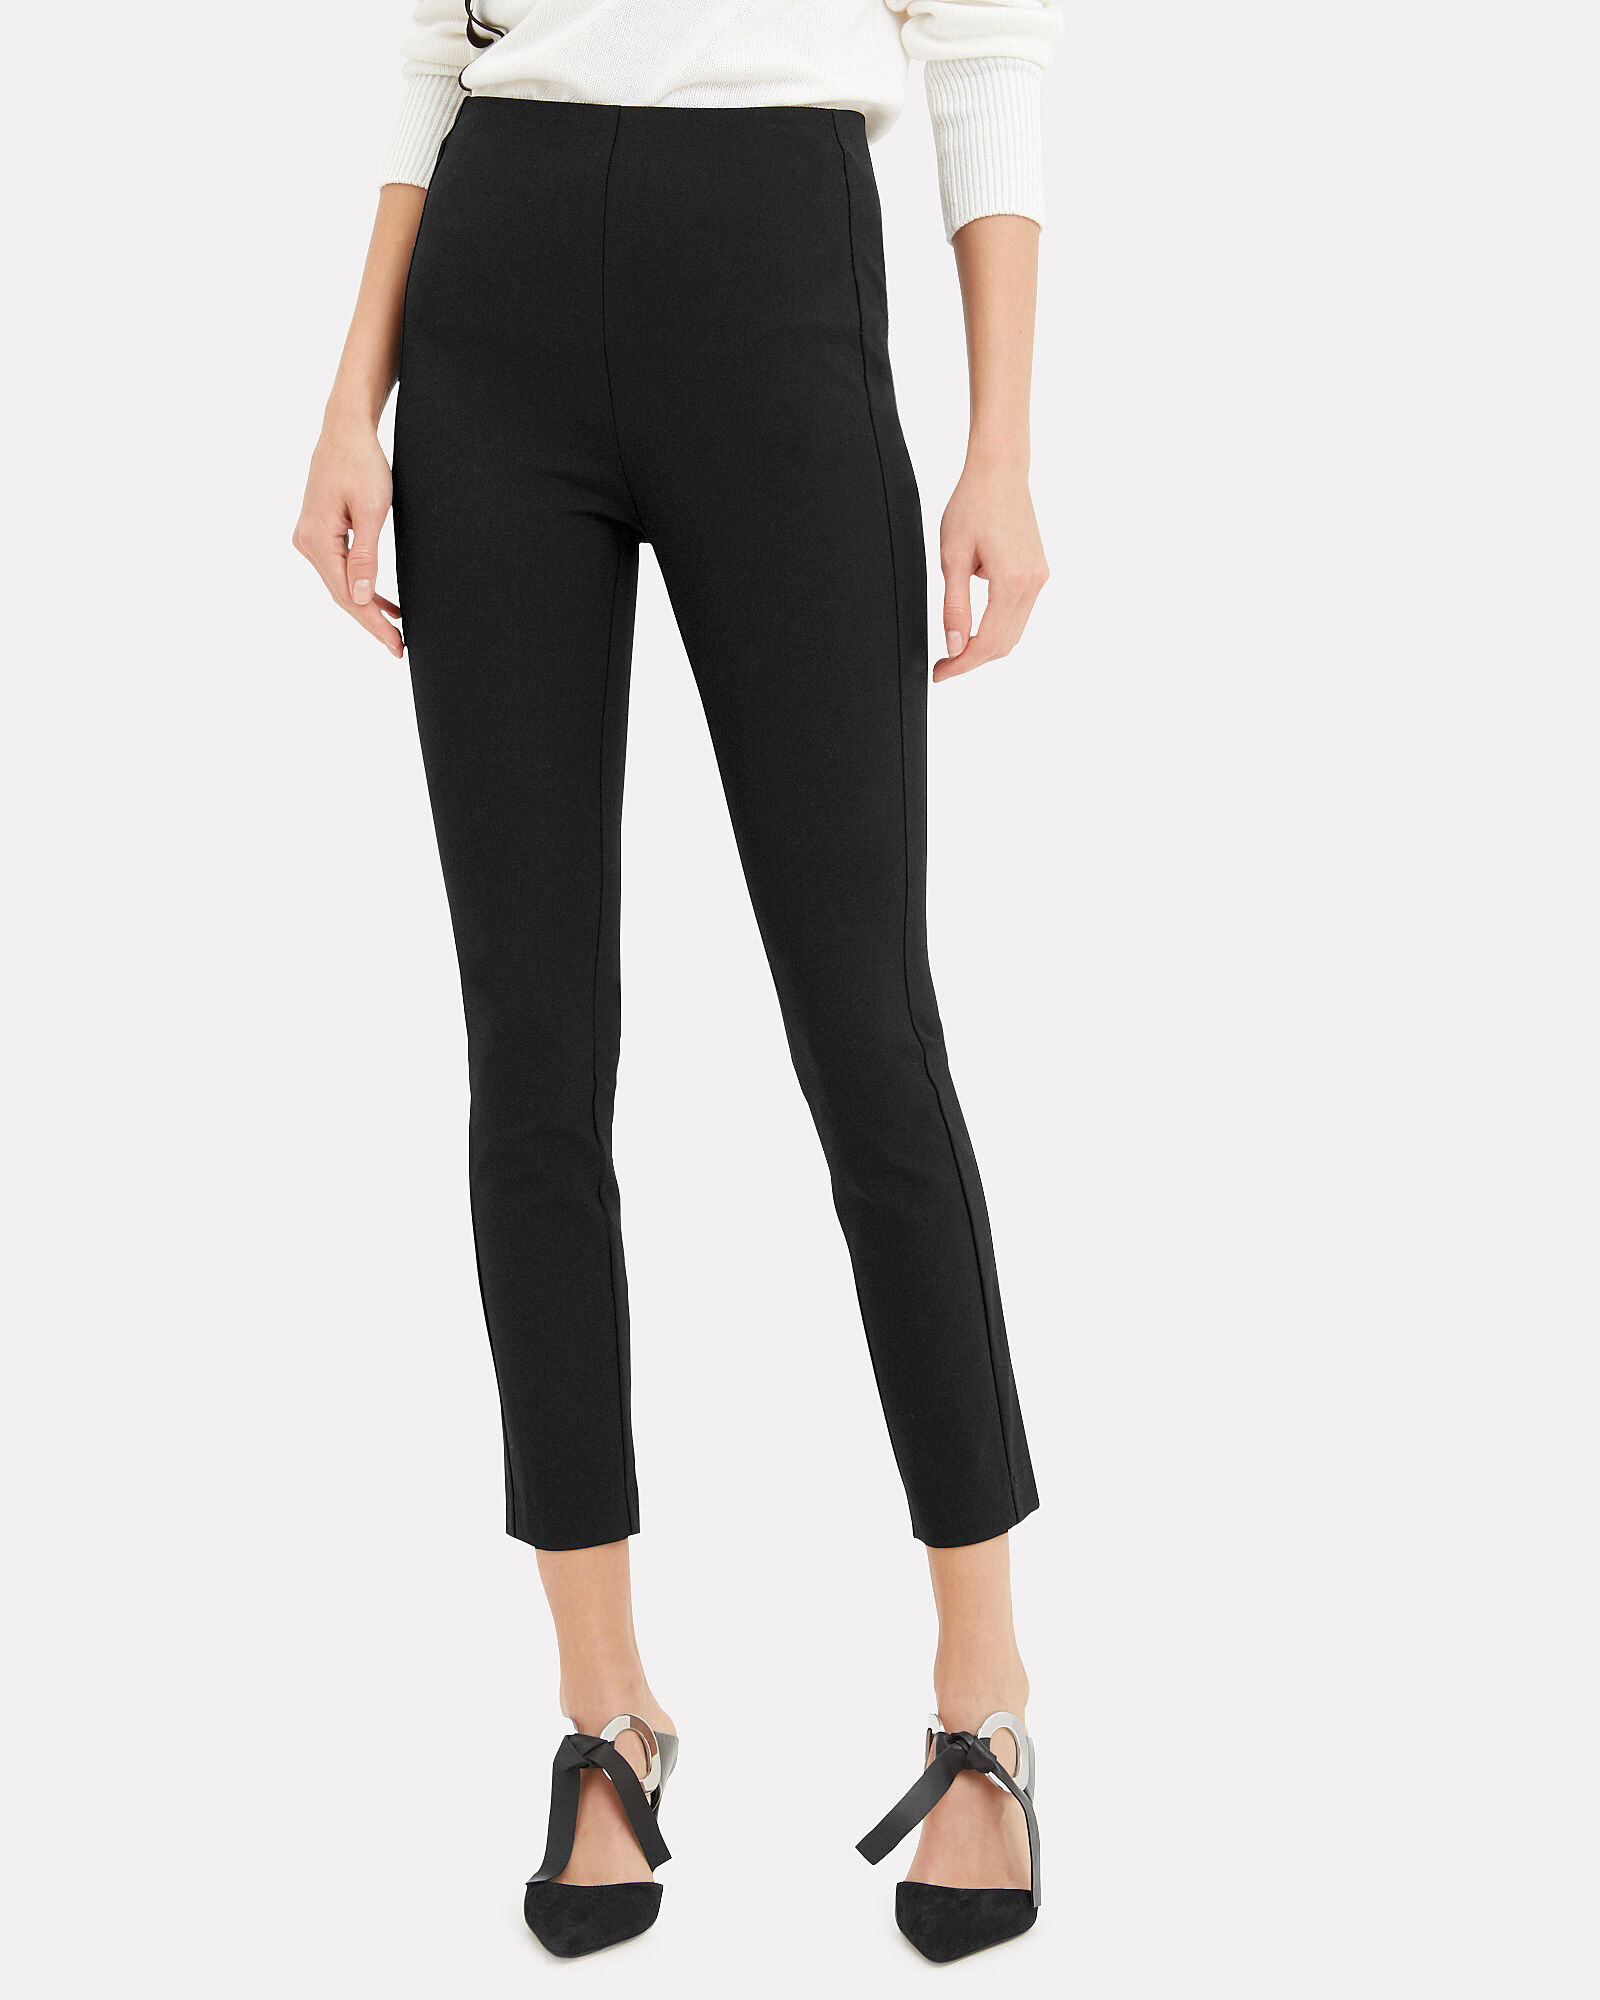 Simone Black Pants, BLACK, hi-res